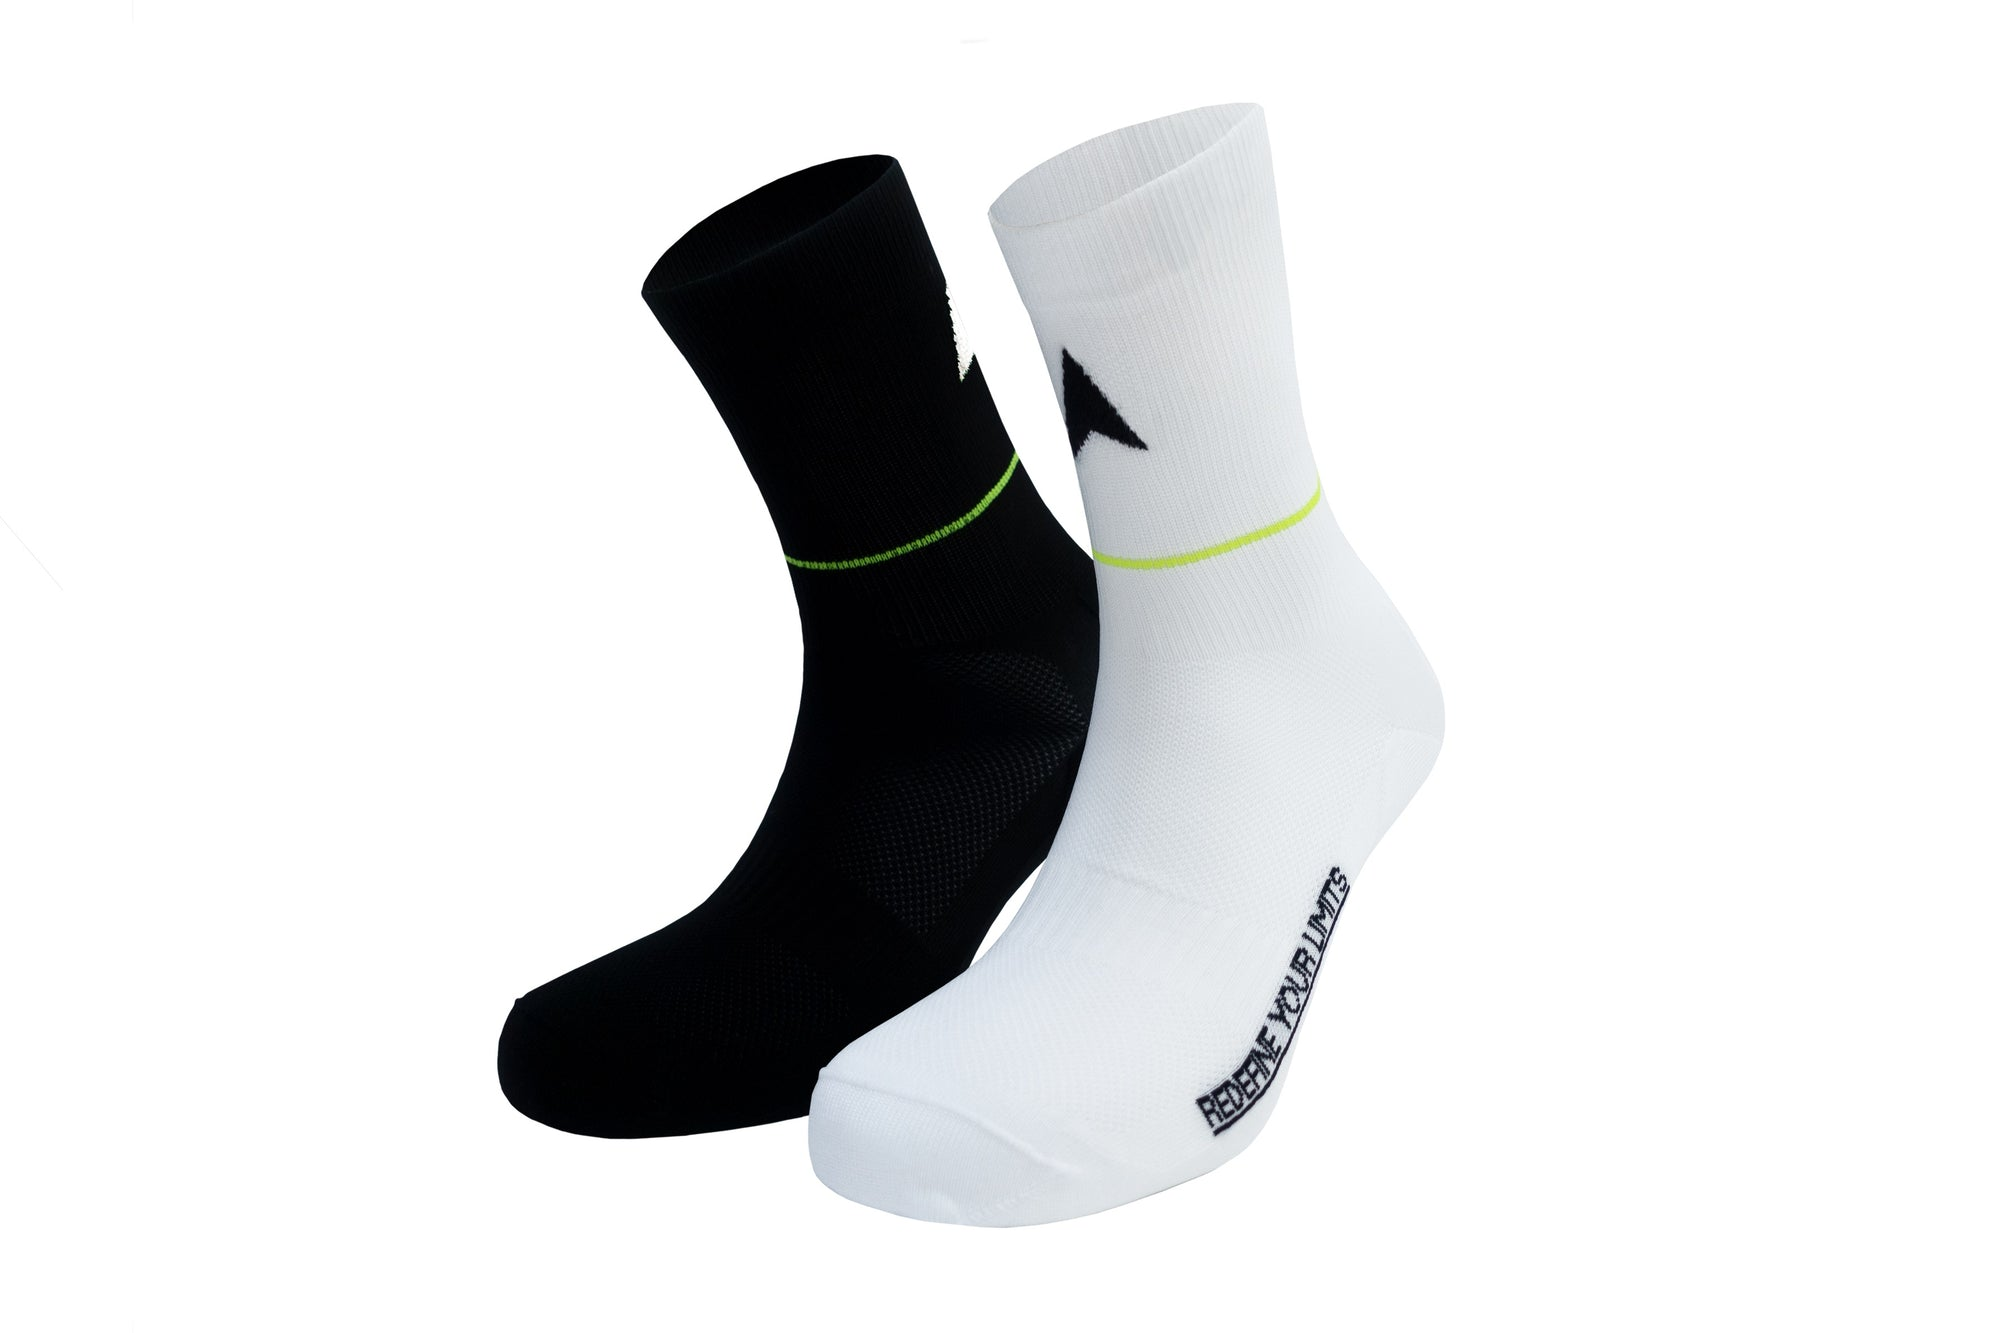 Statement Socks Black & White – Limited Edition